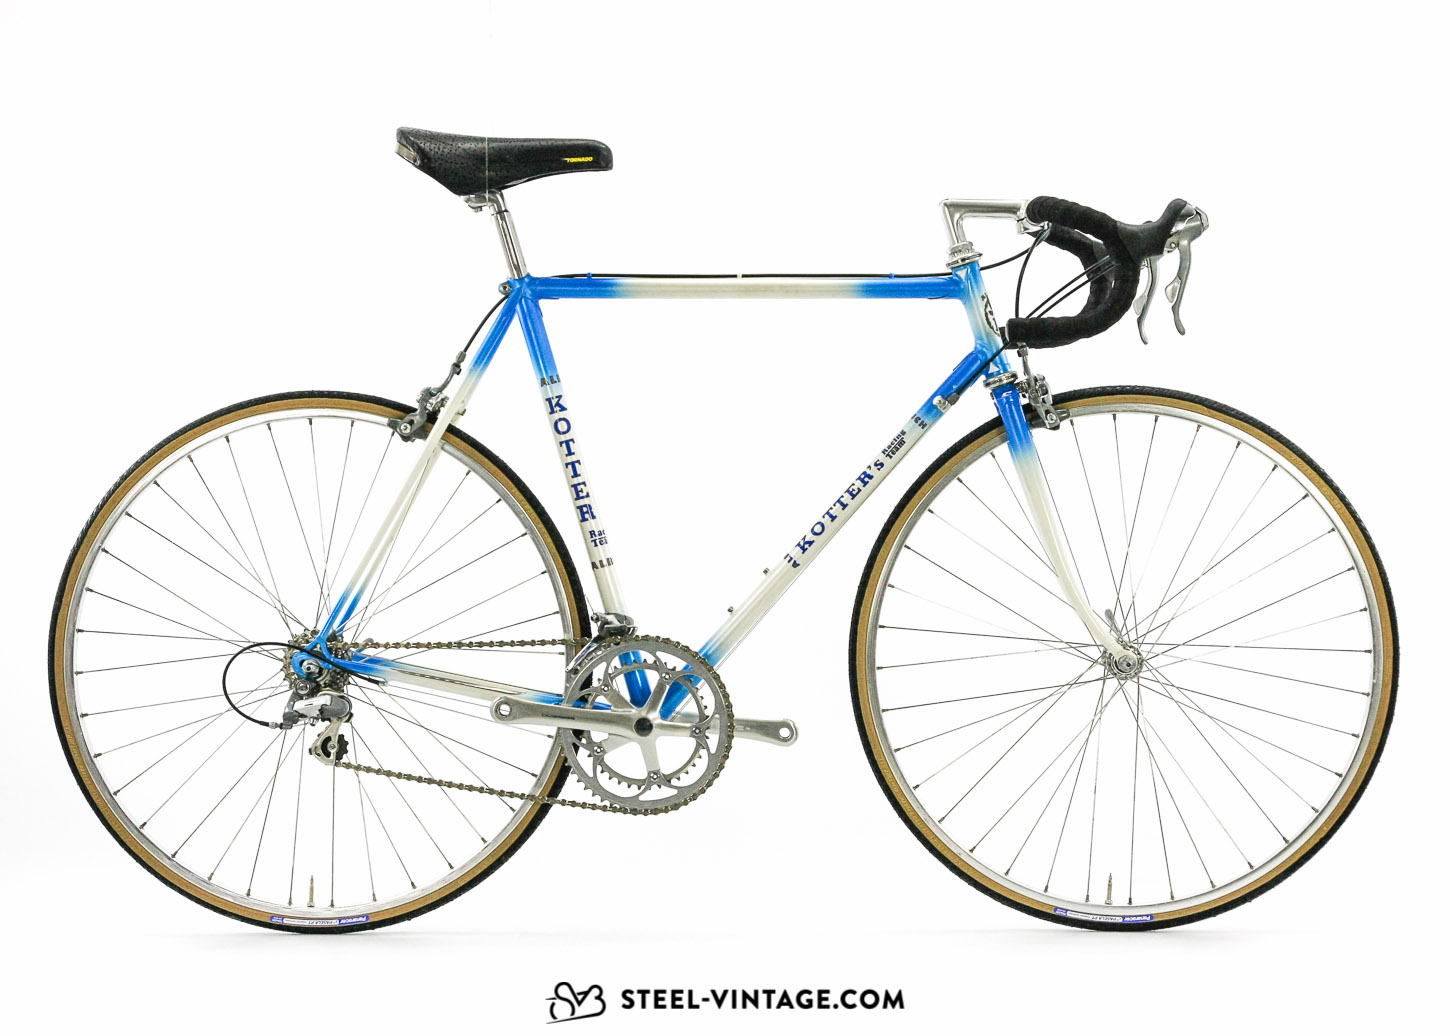 Albuch Kotter's Racing Team Classic Road Bike